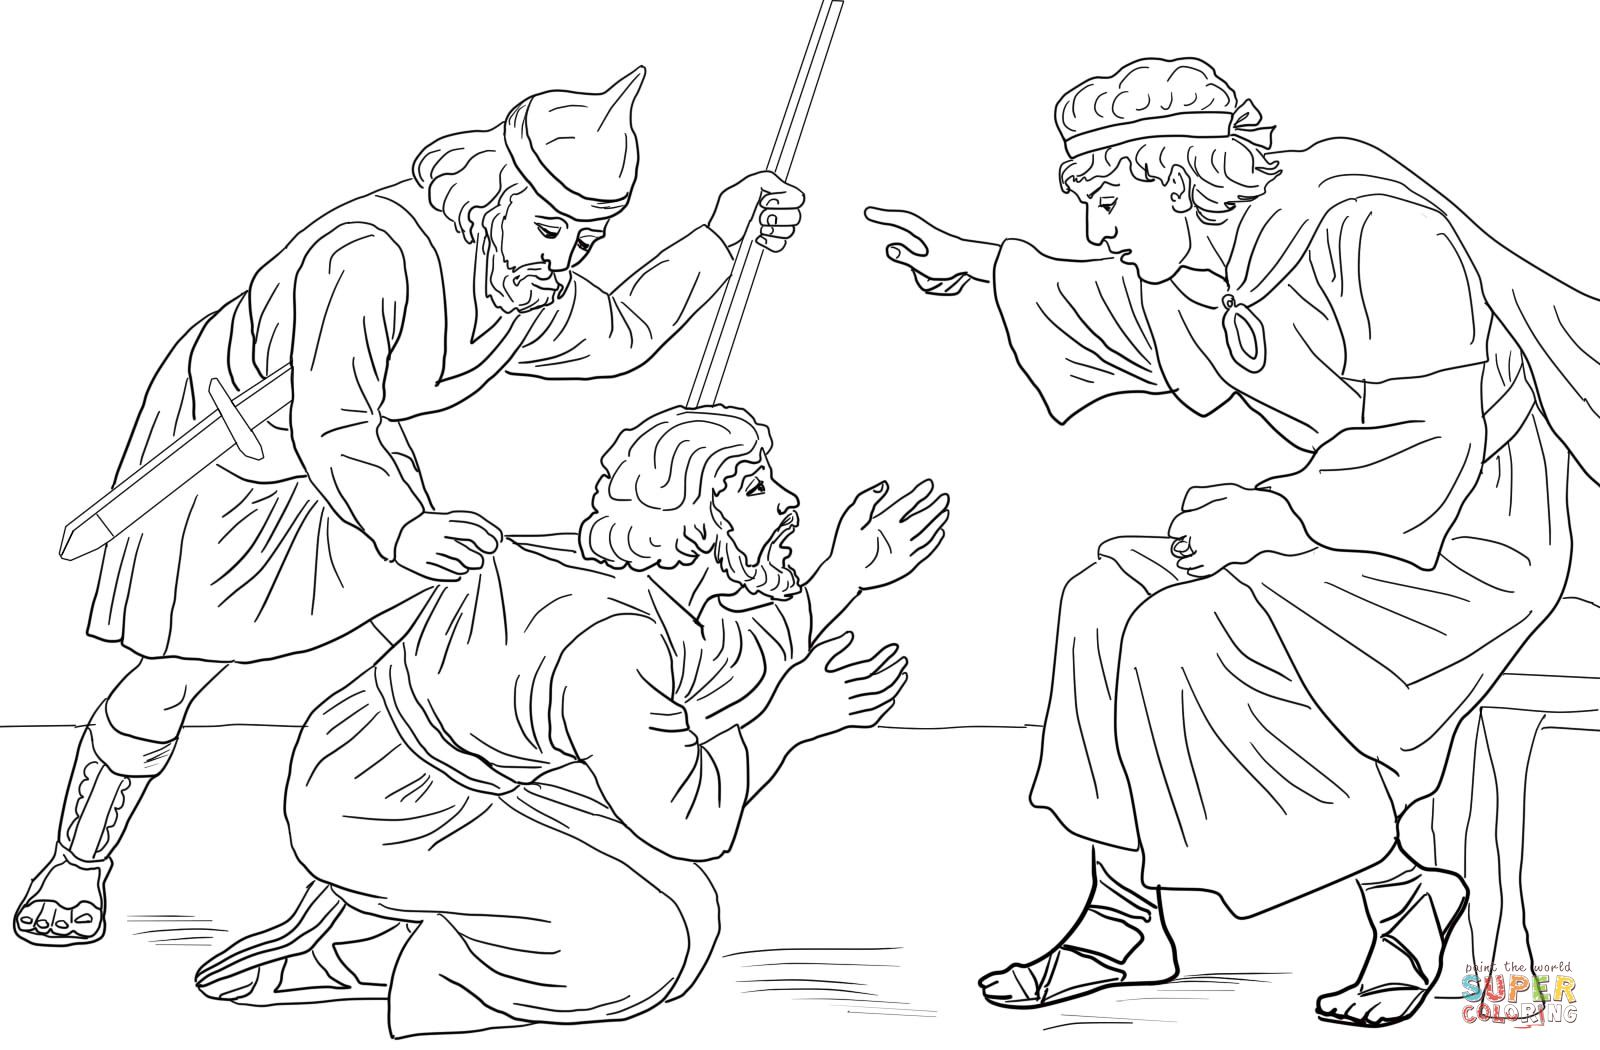 Coloring page for parable of the unmerciful servant 1600 for Unmerciful servant coloring page